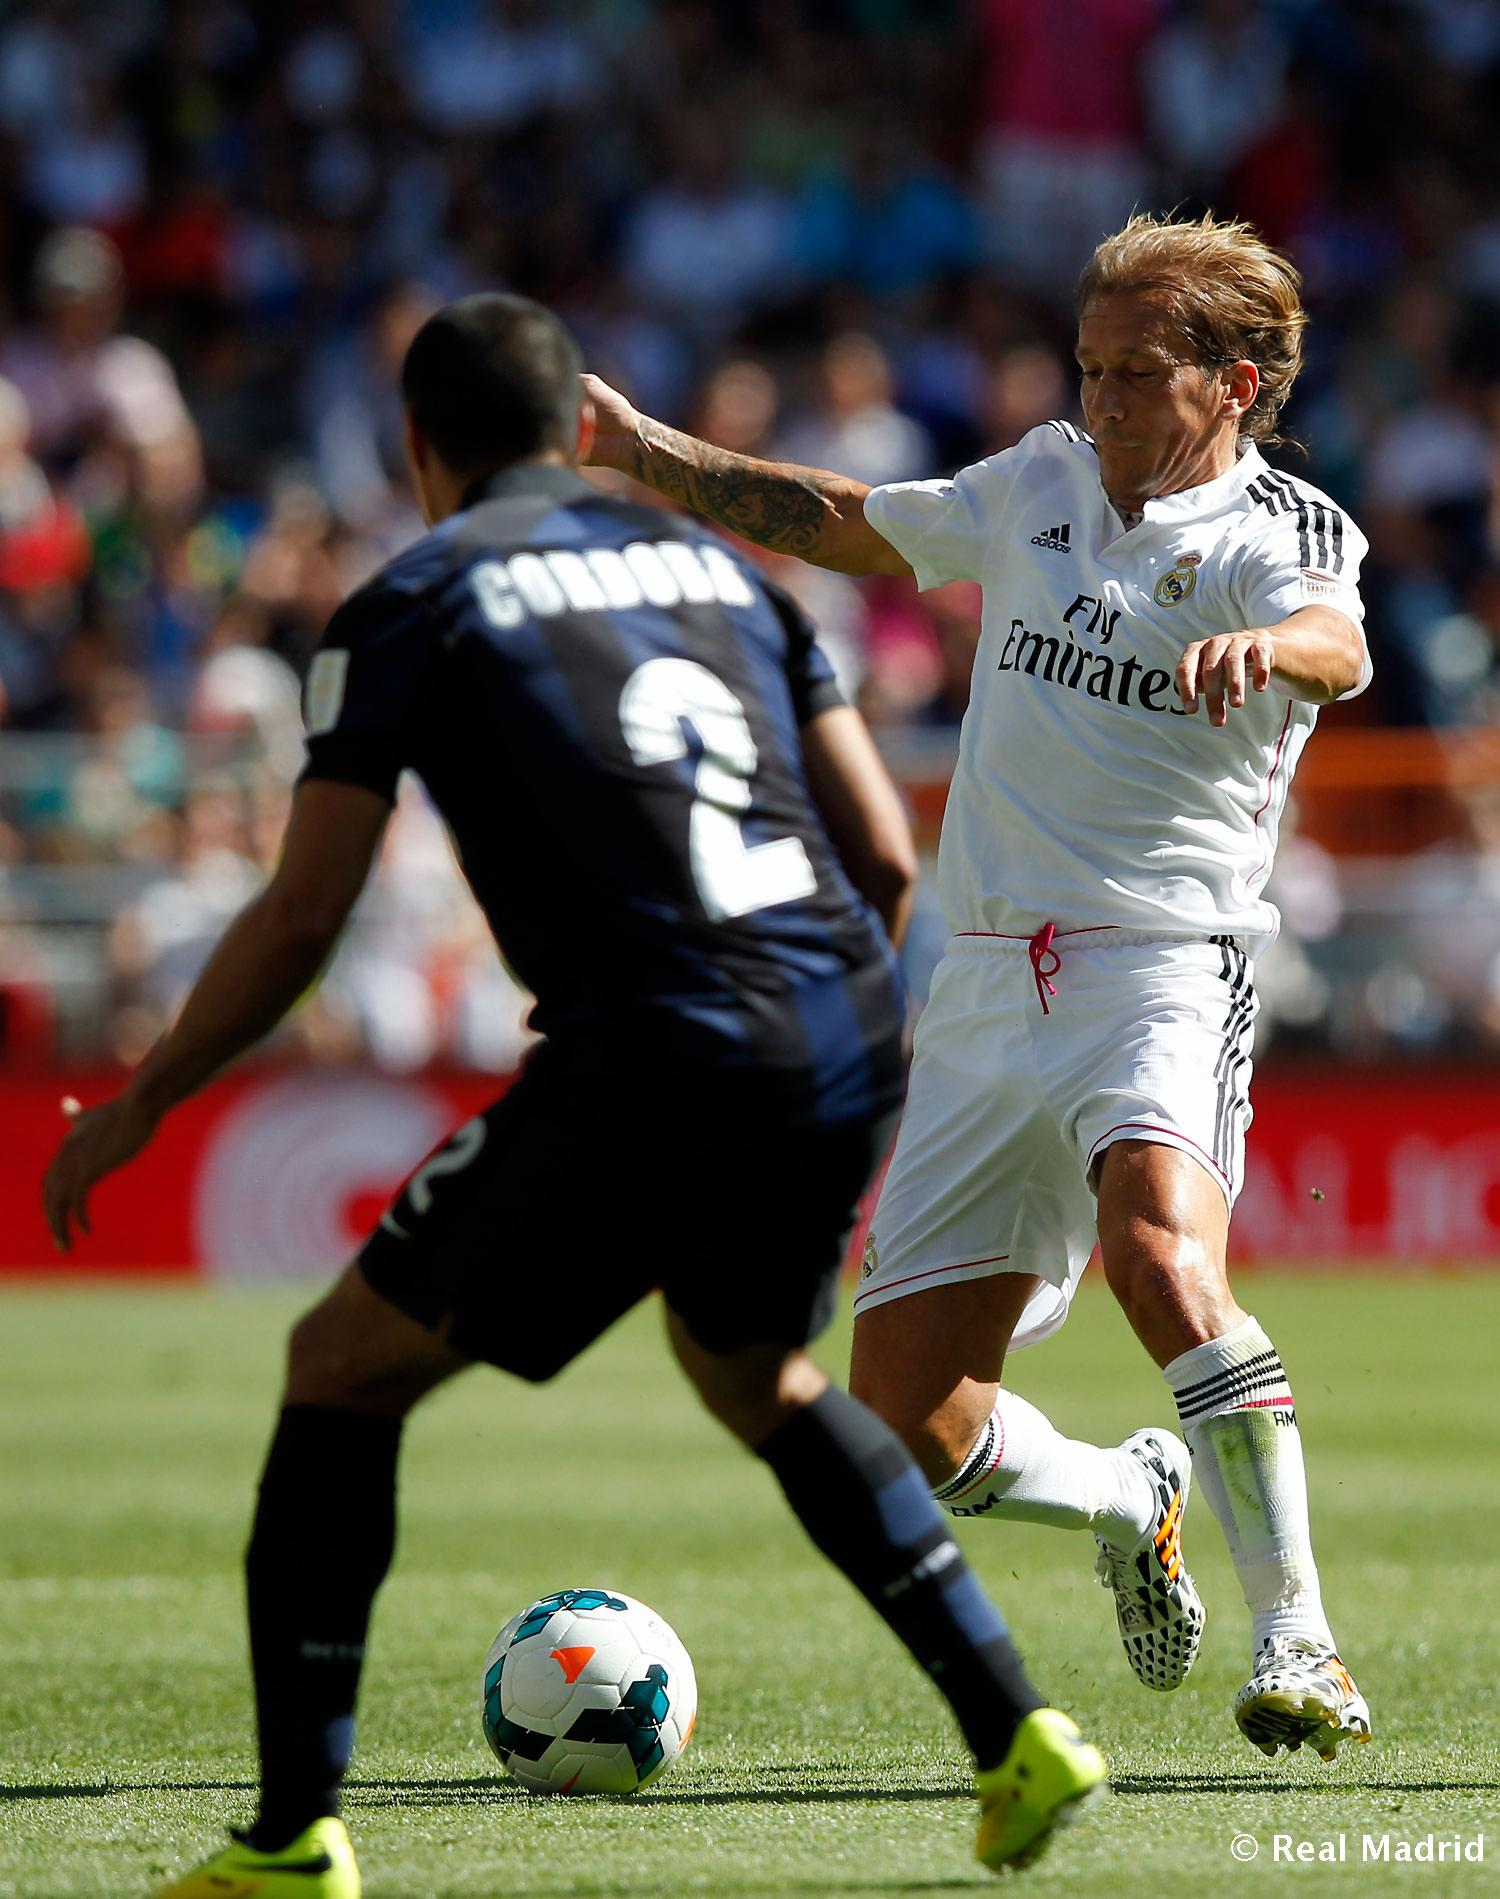 Real Madrid - Corazón Classic Match 2014 - 08-06-2014